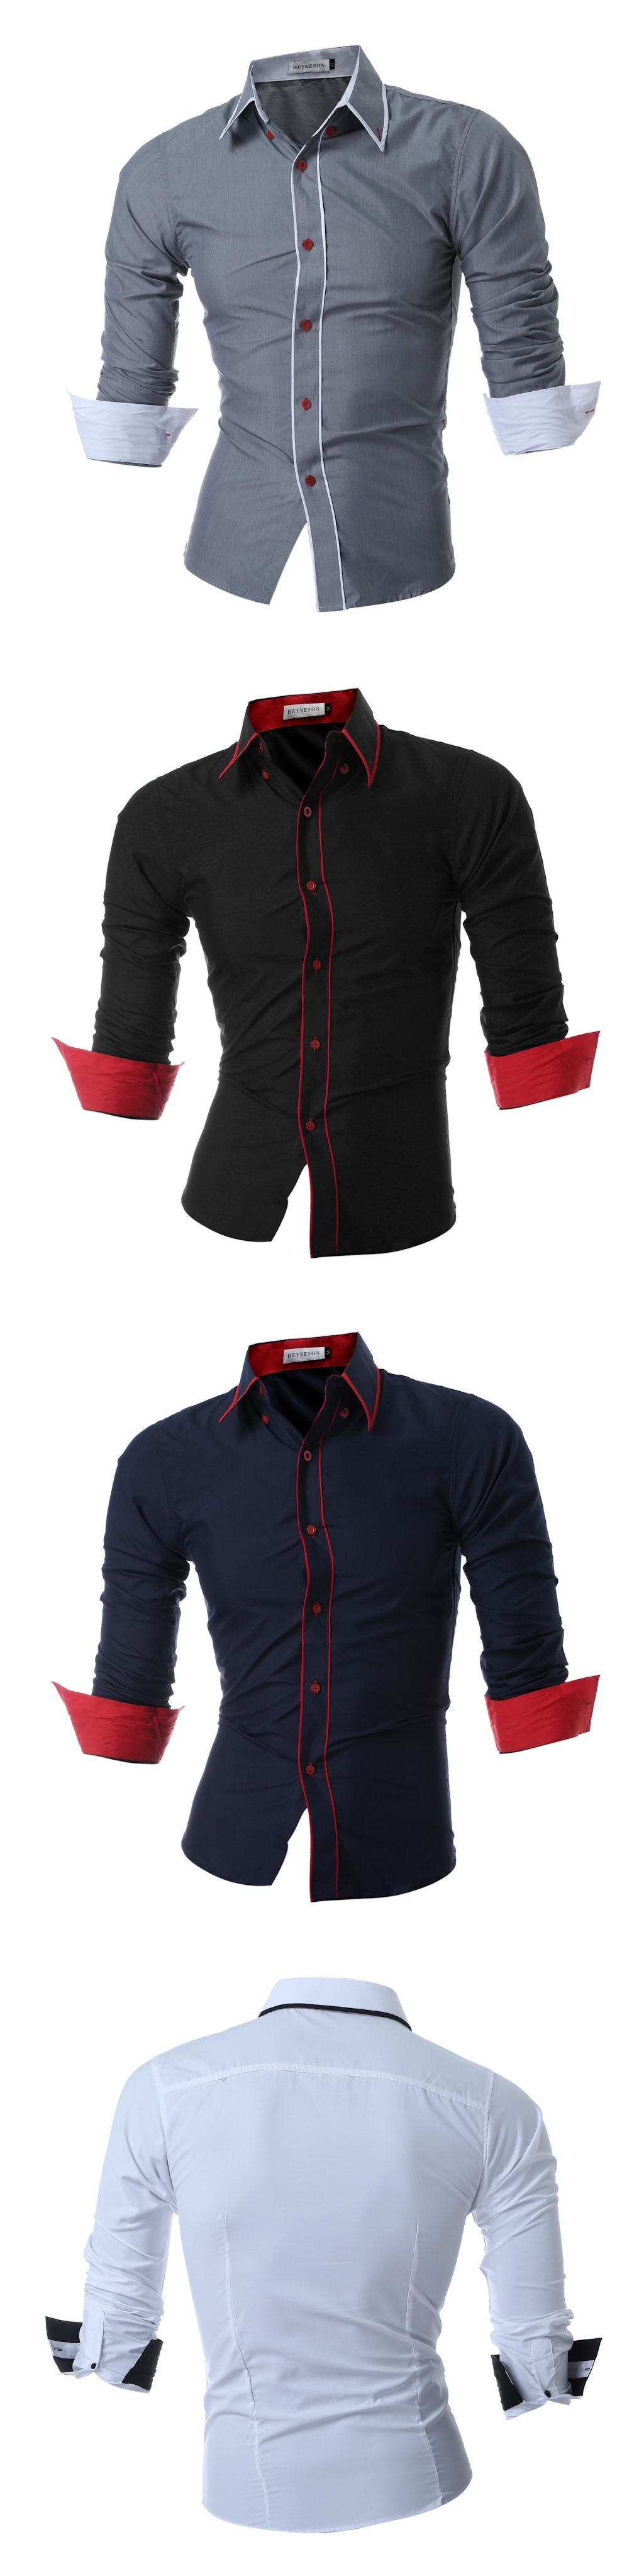 0b4fed02c Top 10 Mens Dress Shirt Brands – EDGE Engineering and Consulting Limited